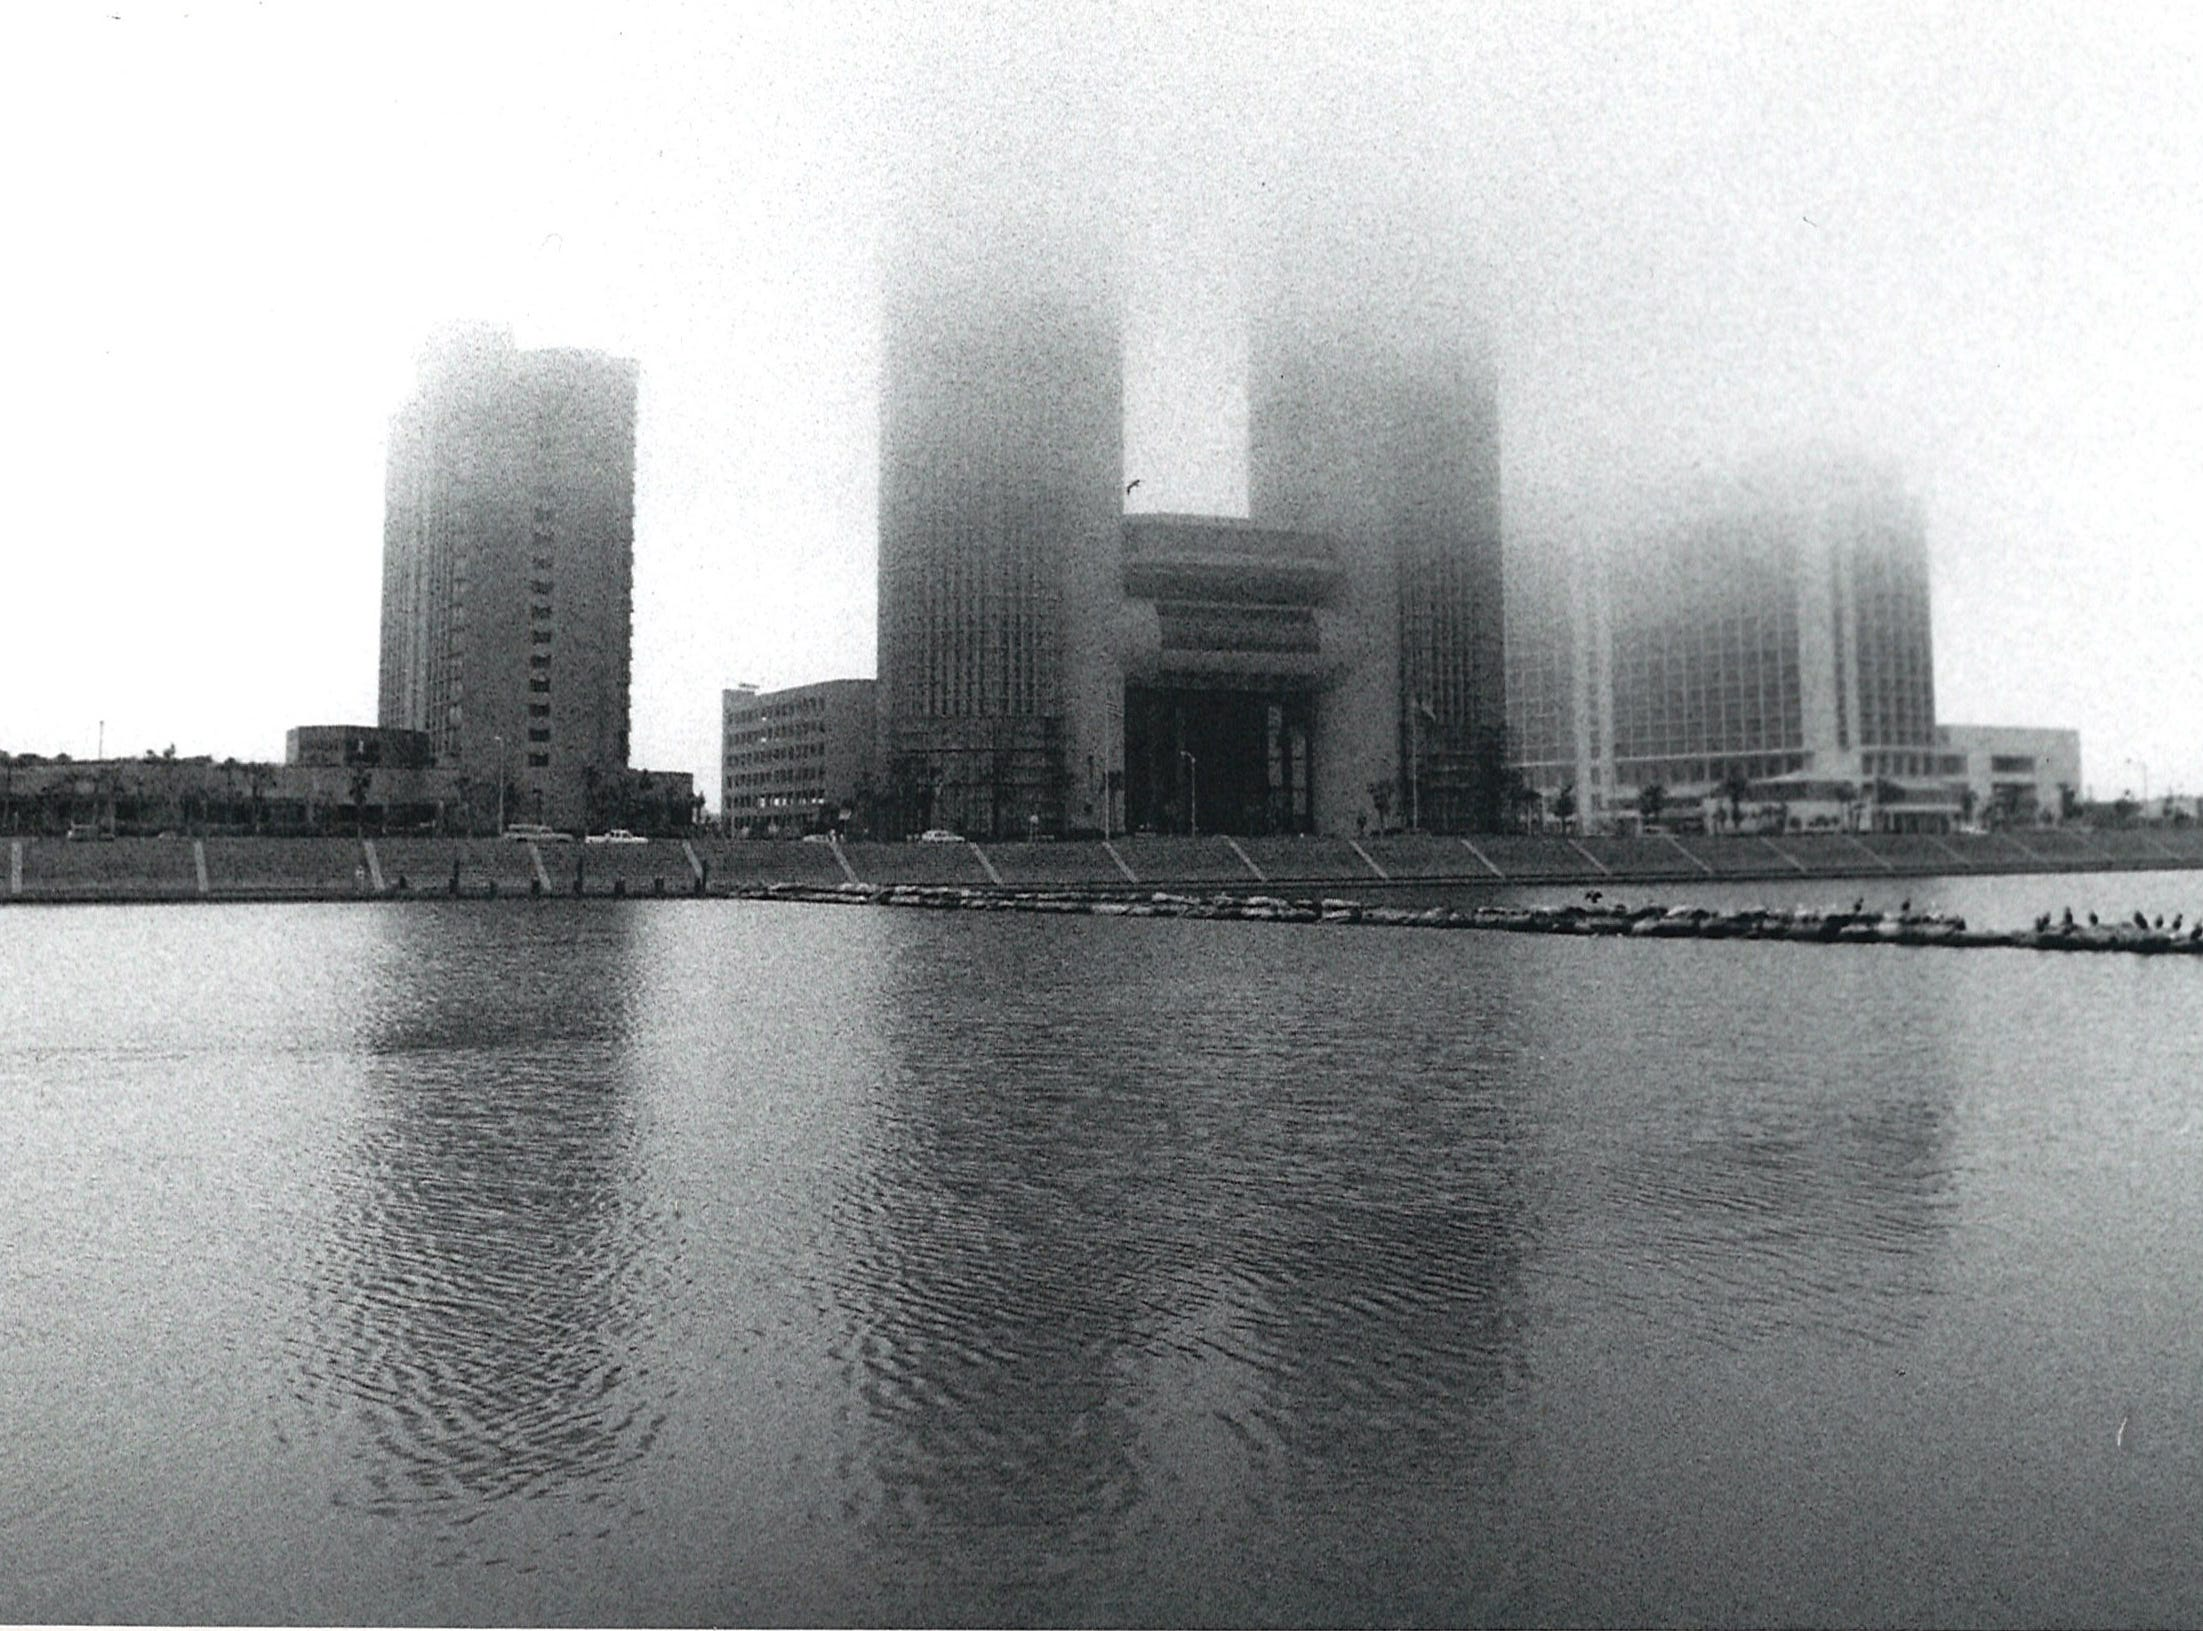 Downtown Corpus Christi covered in heavy fog on Jan. 10, 1990.